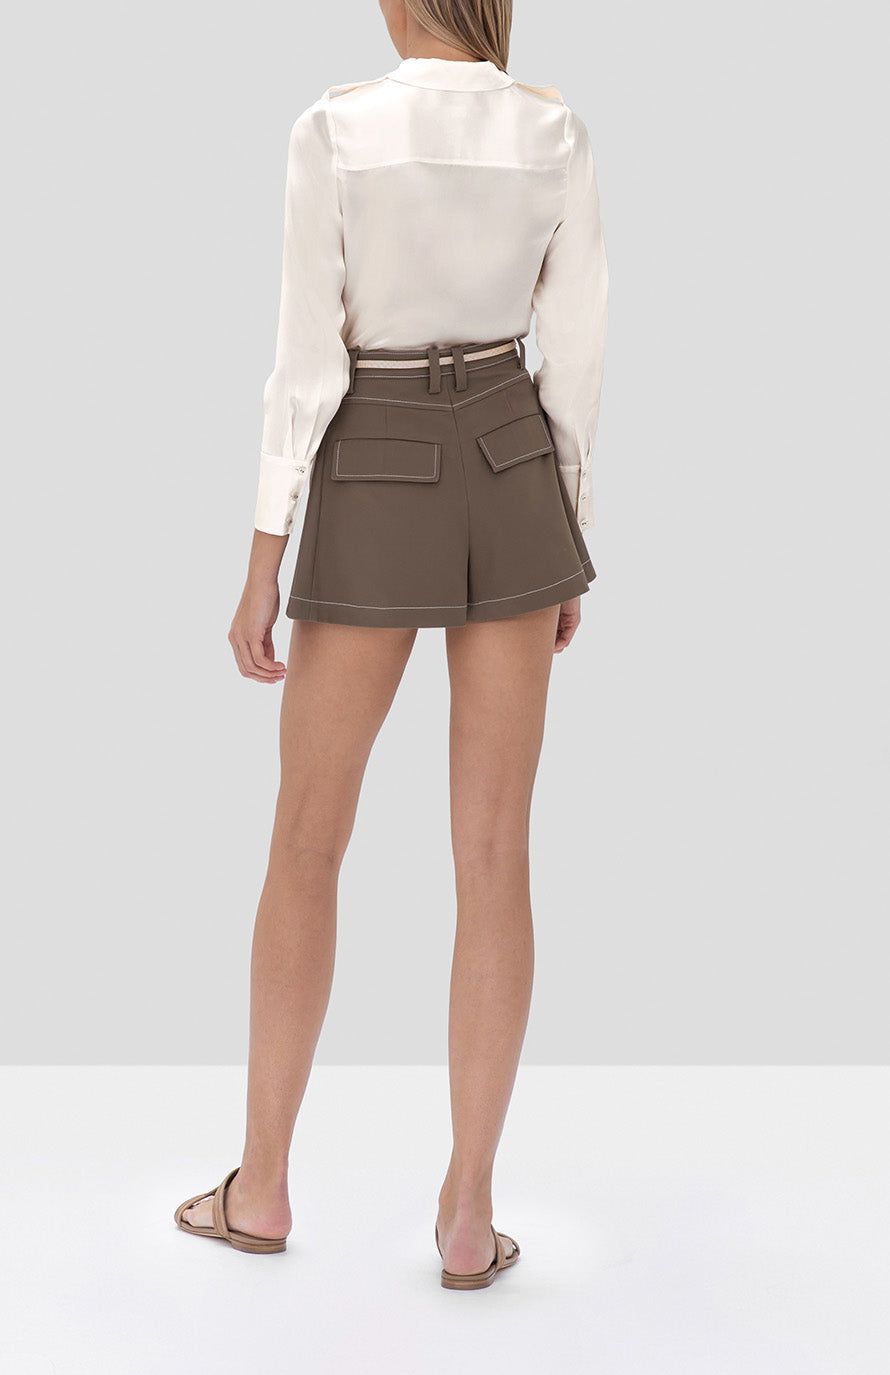 Alexis Montrose Top in Ivory and Laz Shorts in Mocha - Rear View